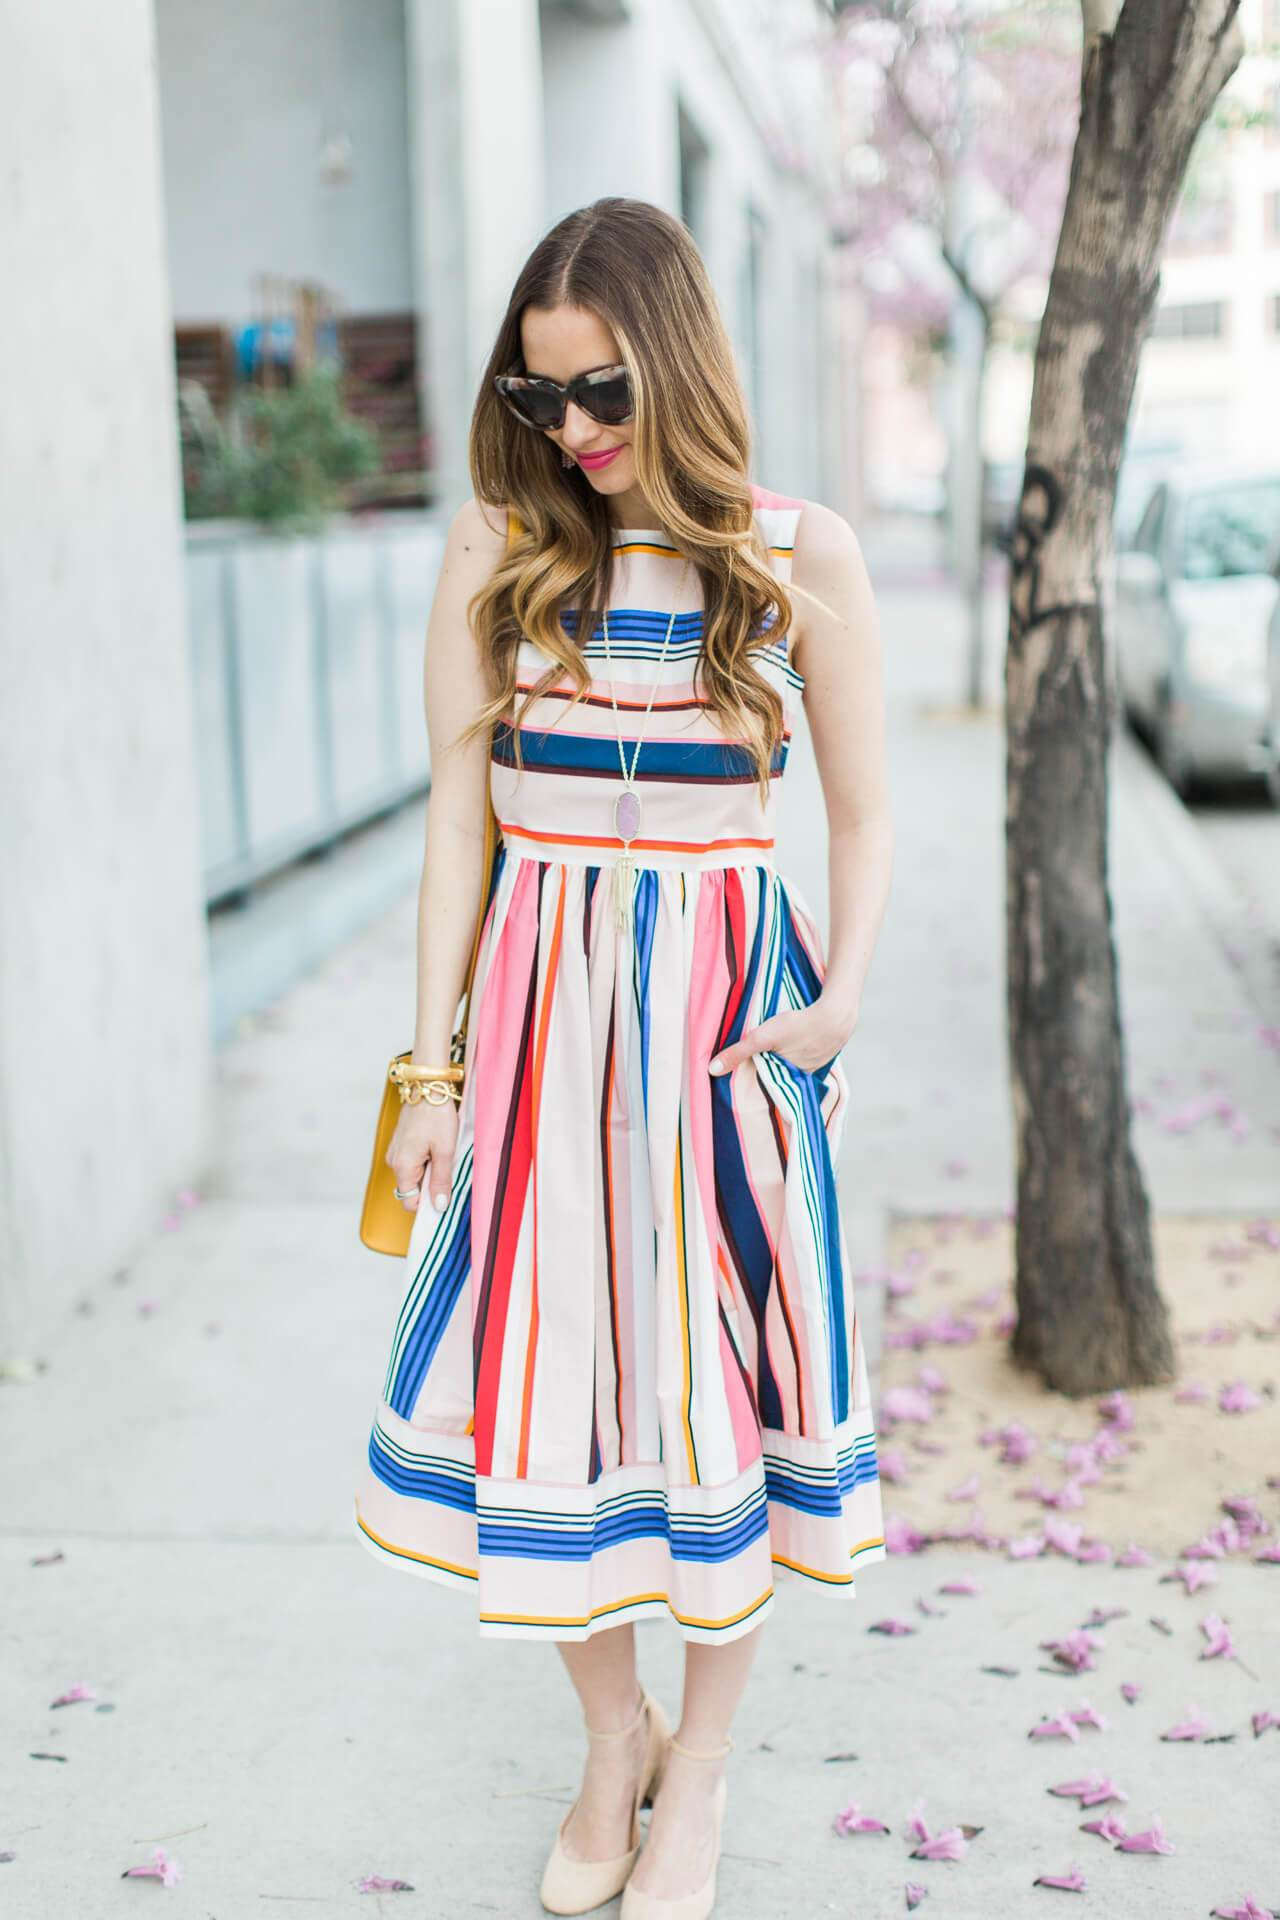 Stripes Inspiration - Kate Spade Colorful Striped Dress for Spring via M Loves M | https://www.roseclearfield.com